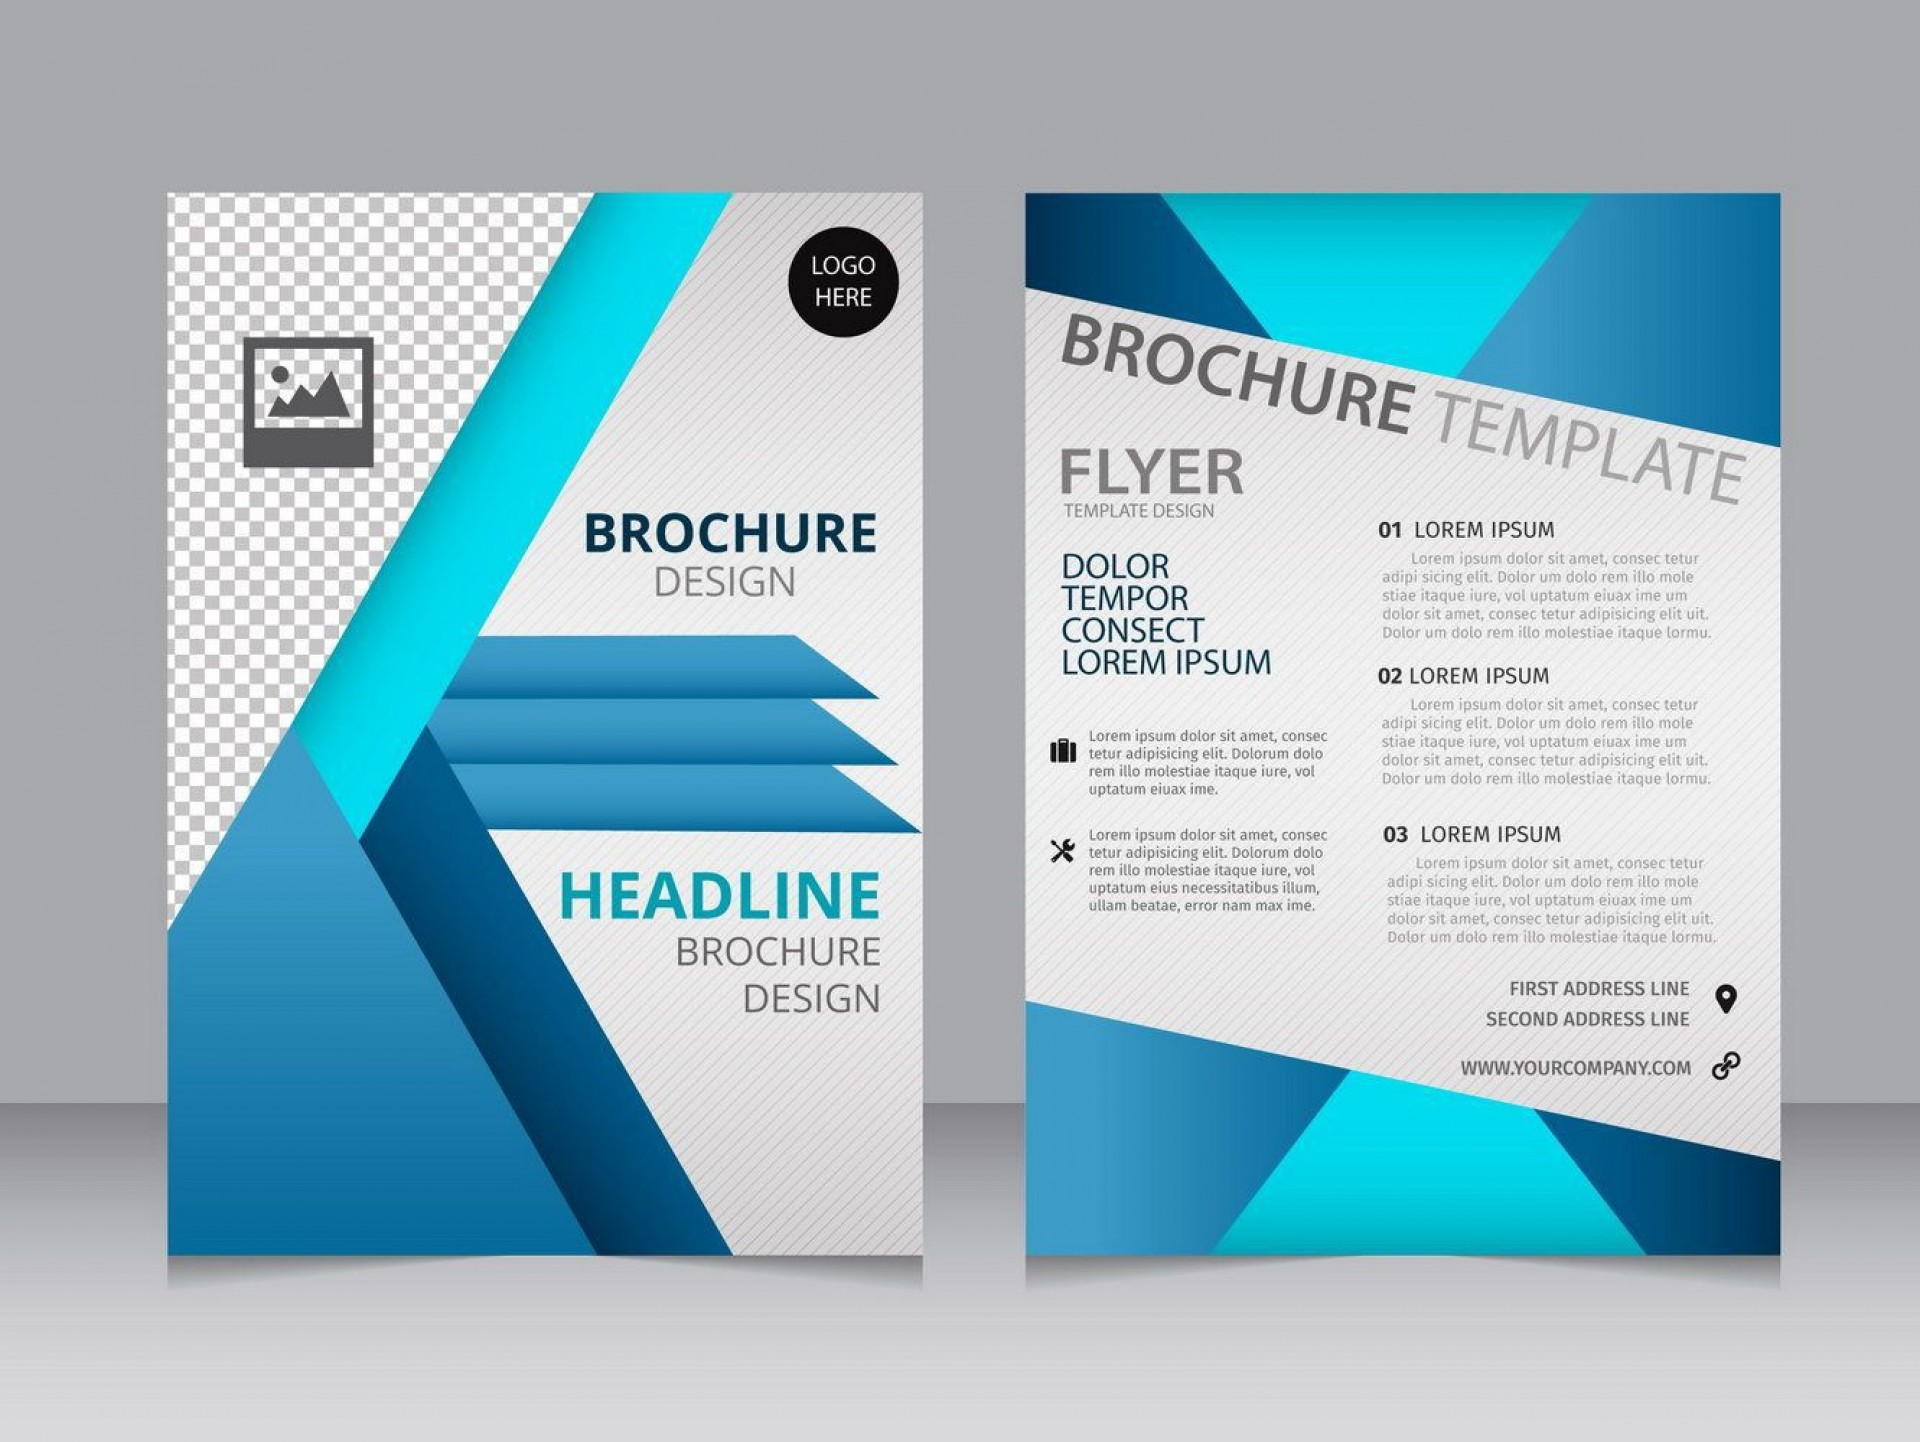 003 Awful Word Template Free Download Image  Simple Cv 20191920